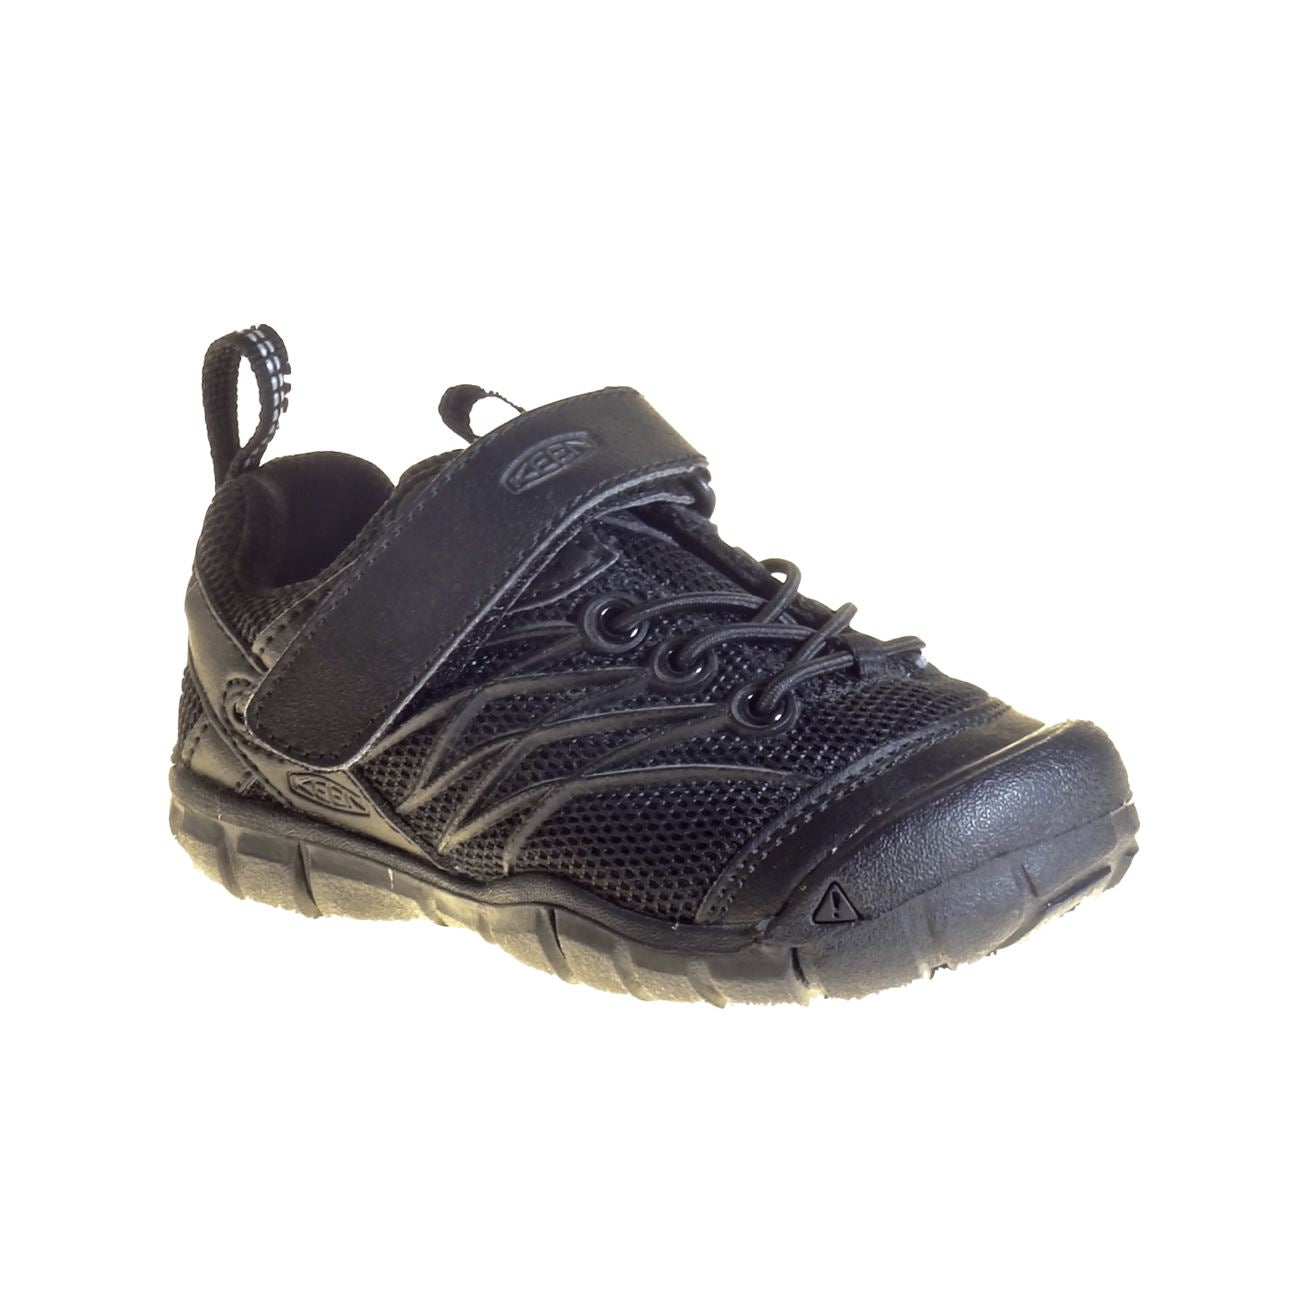 Keen, Chandler CNX, Children, Light Weight, Breathable Shoe, Black/Black Shoes Keen Black/Black 11